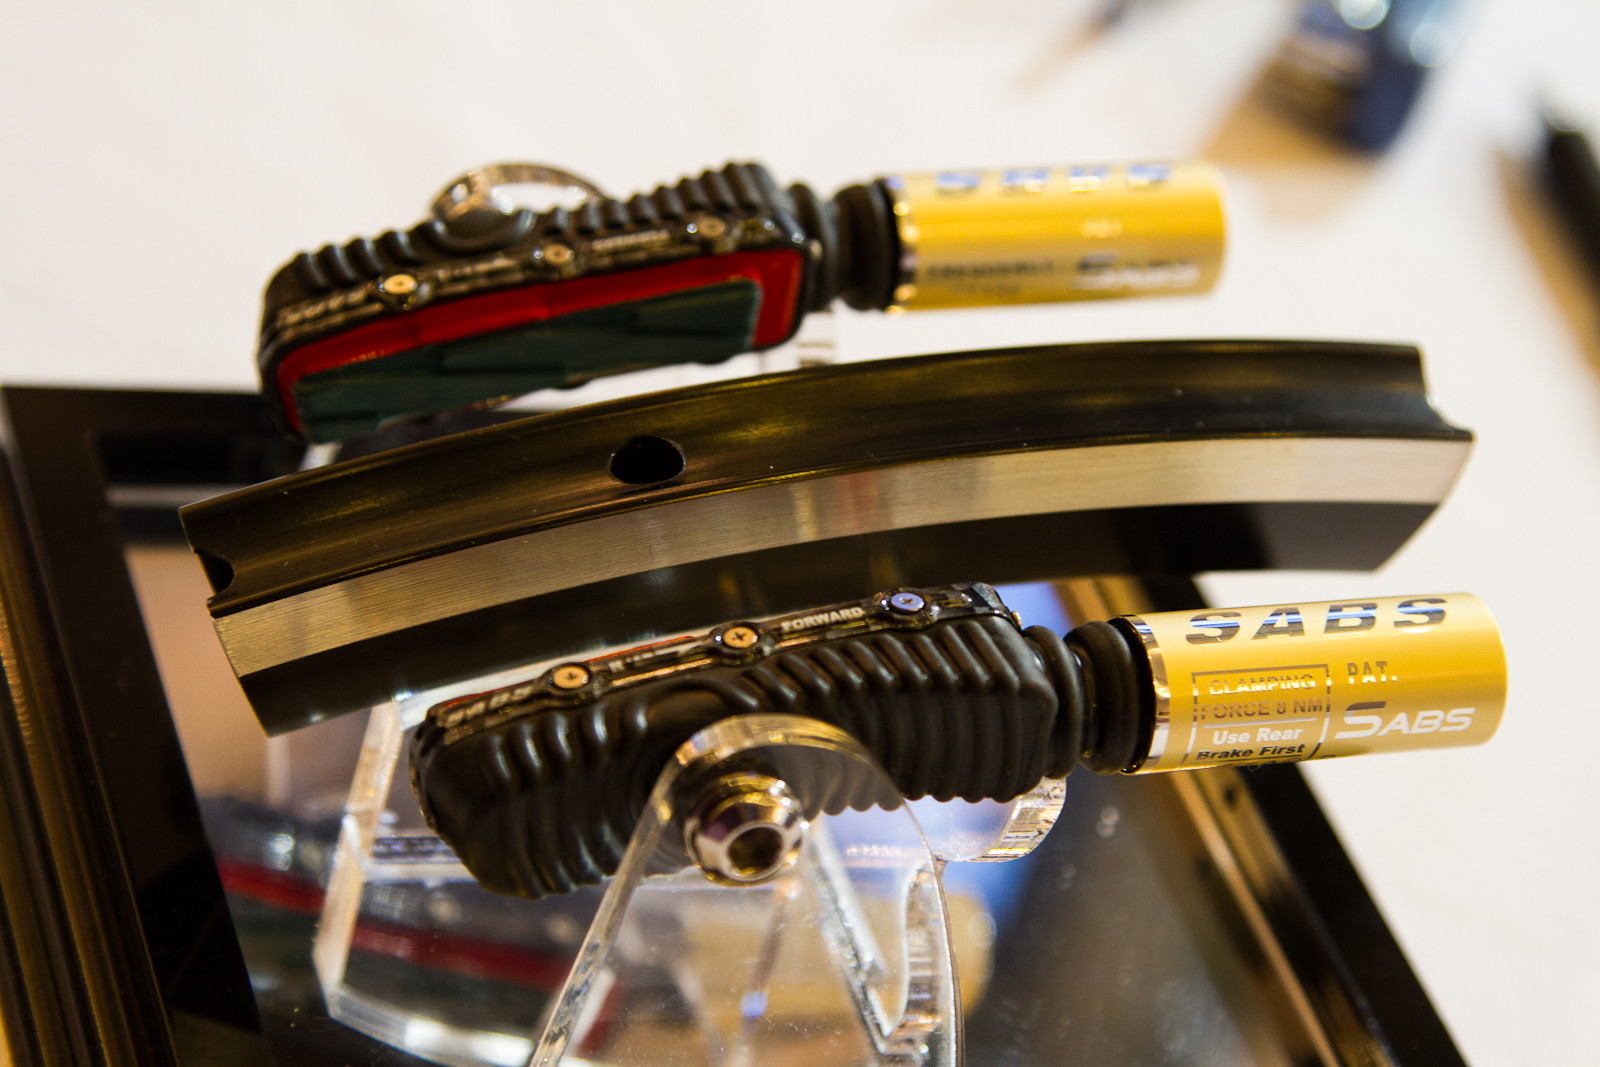 Anti-Lock Rim Brake Solution? - 2013 and 2014 Products from Taichung Bike Week - Mountain Biking Pictures - Vital MTB